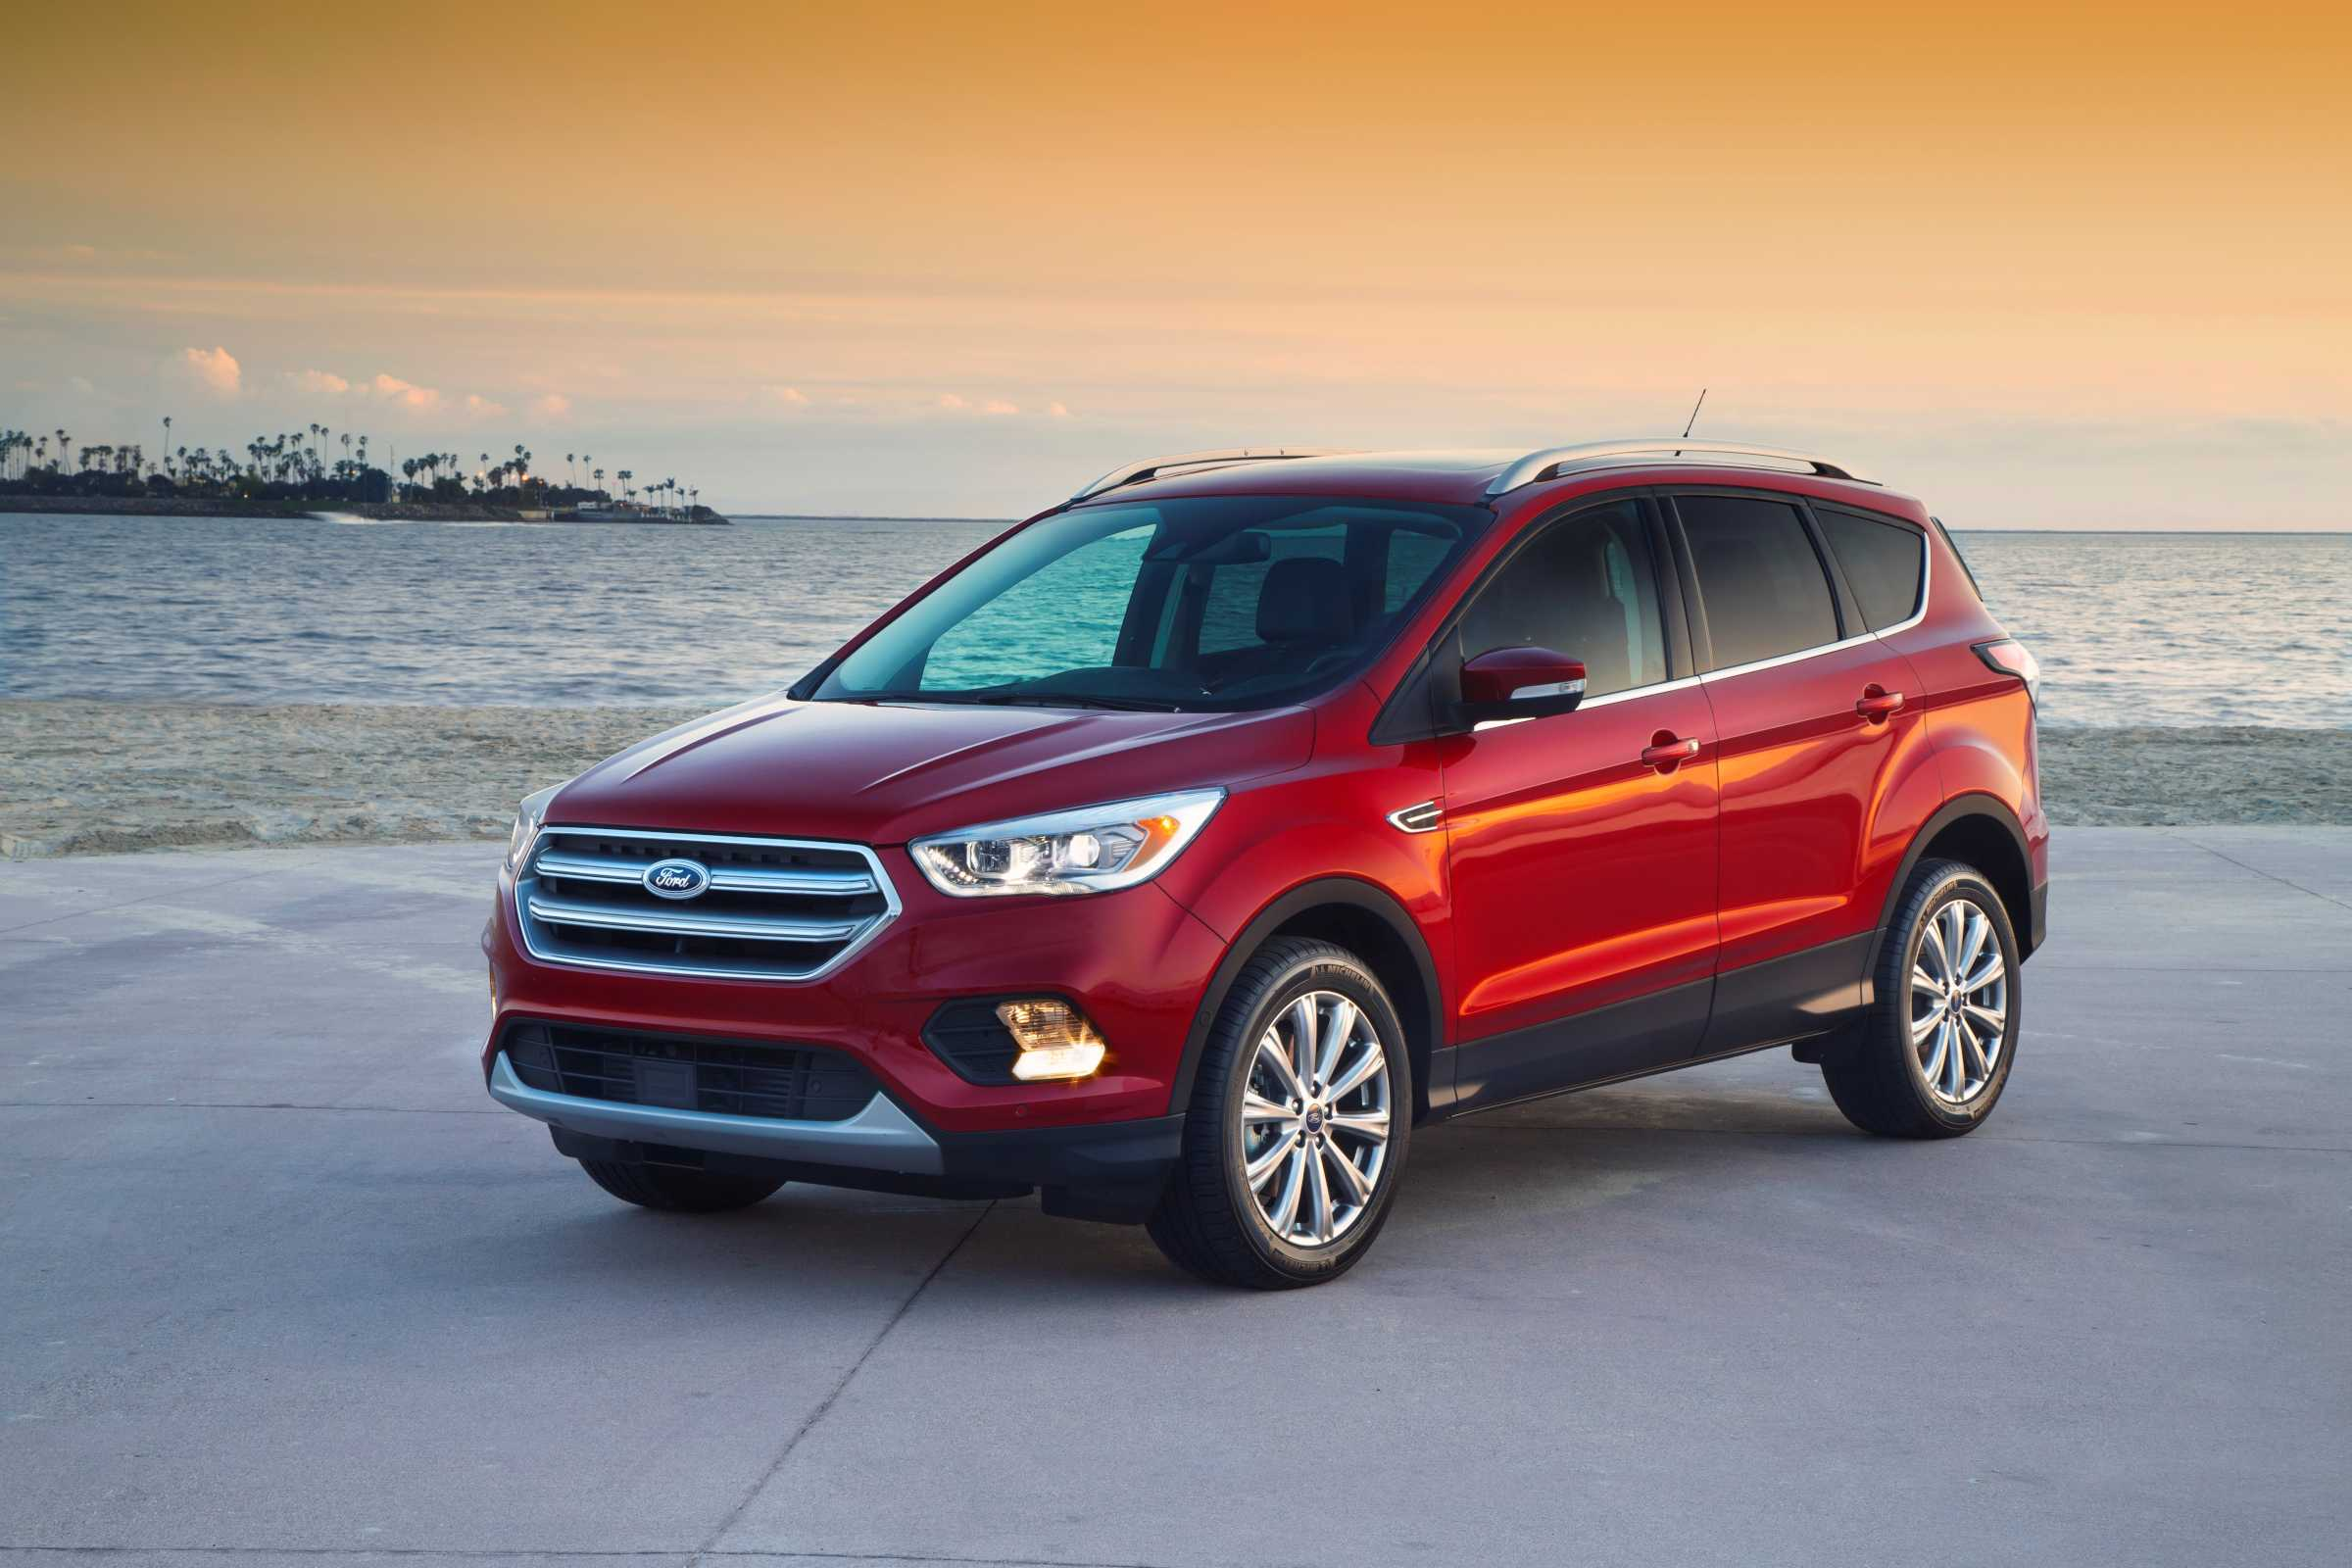 New Ford Escape includes driver-assist technologies, remote connectivity, and two new EcoBoost engines.